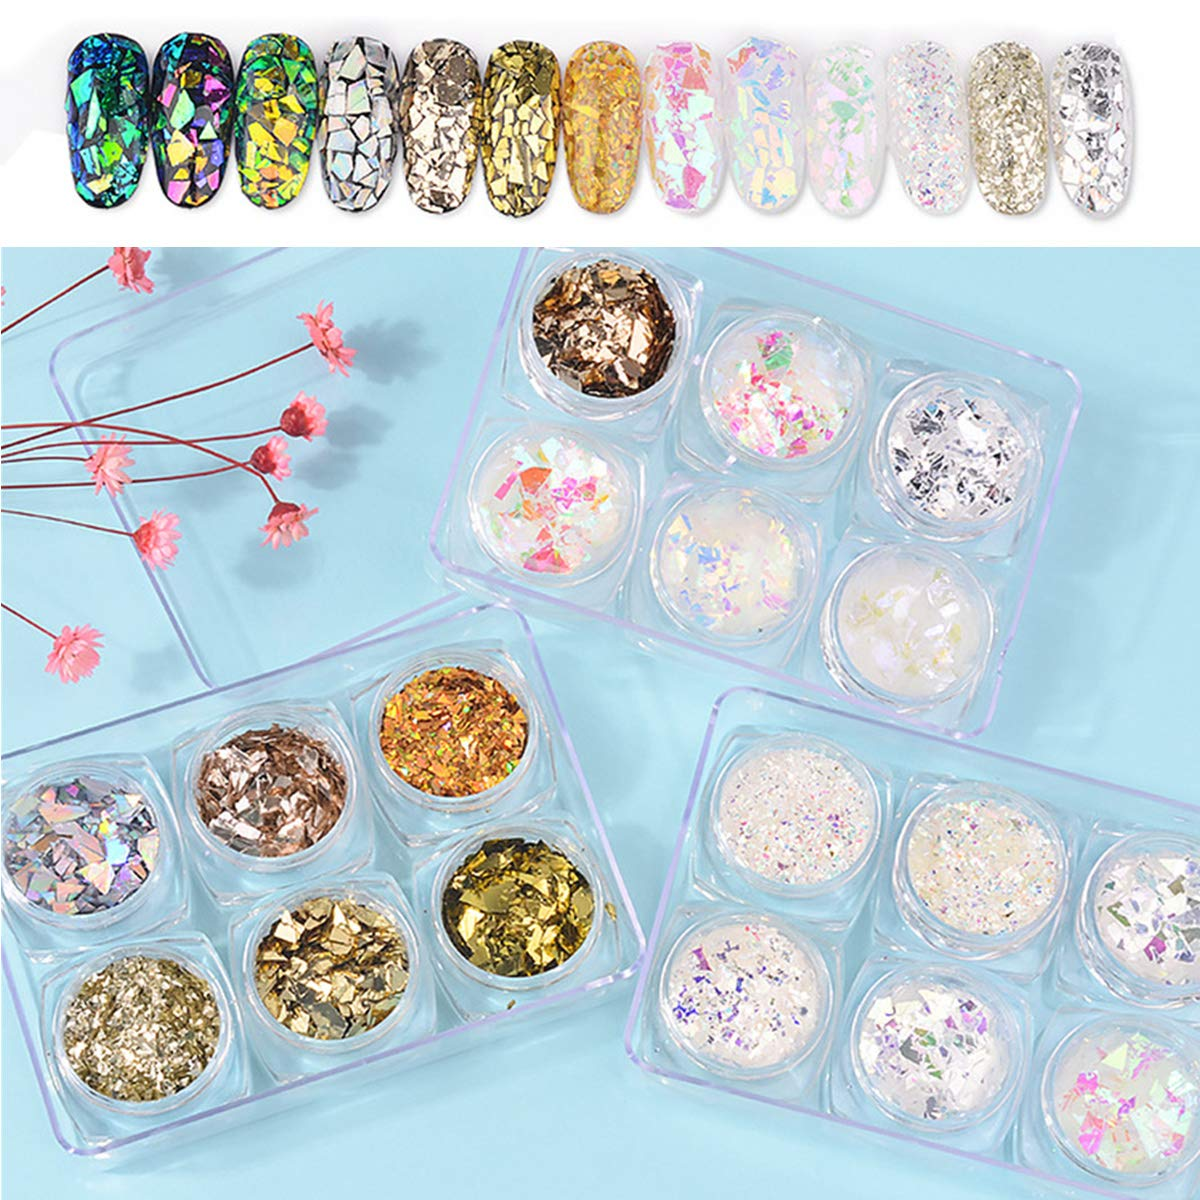 Mezerdoo 18 Boxes Nail Glitter Sequins Cellophane Set Chameleon Glass Paper Irregular Paillette Nail Art Tips Flakes Nail Art Decoration 3D Manicure Sticker DIY for UV Gel